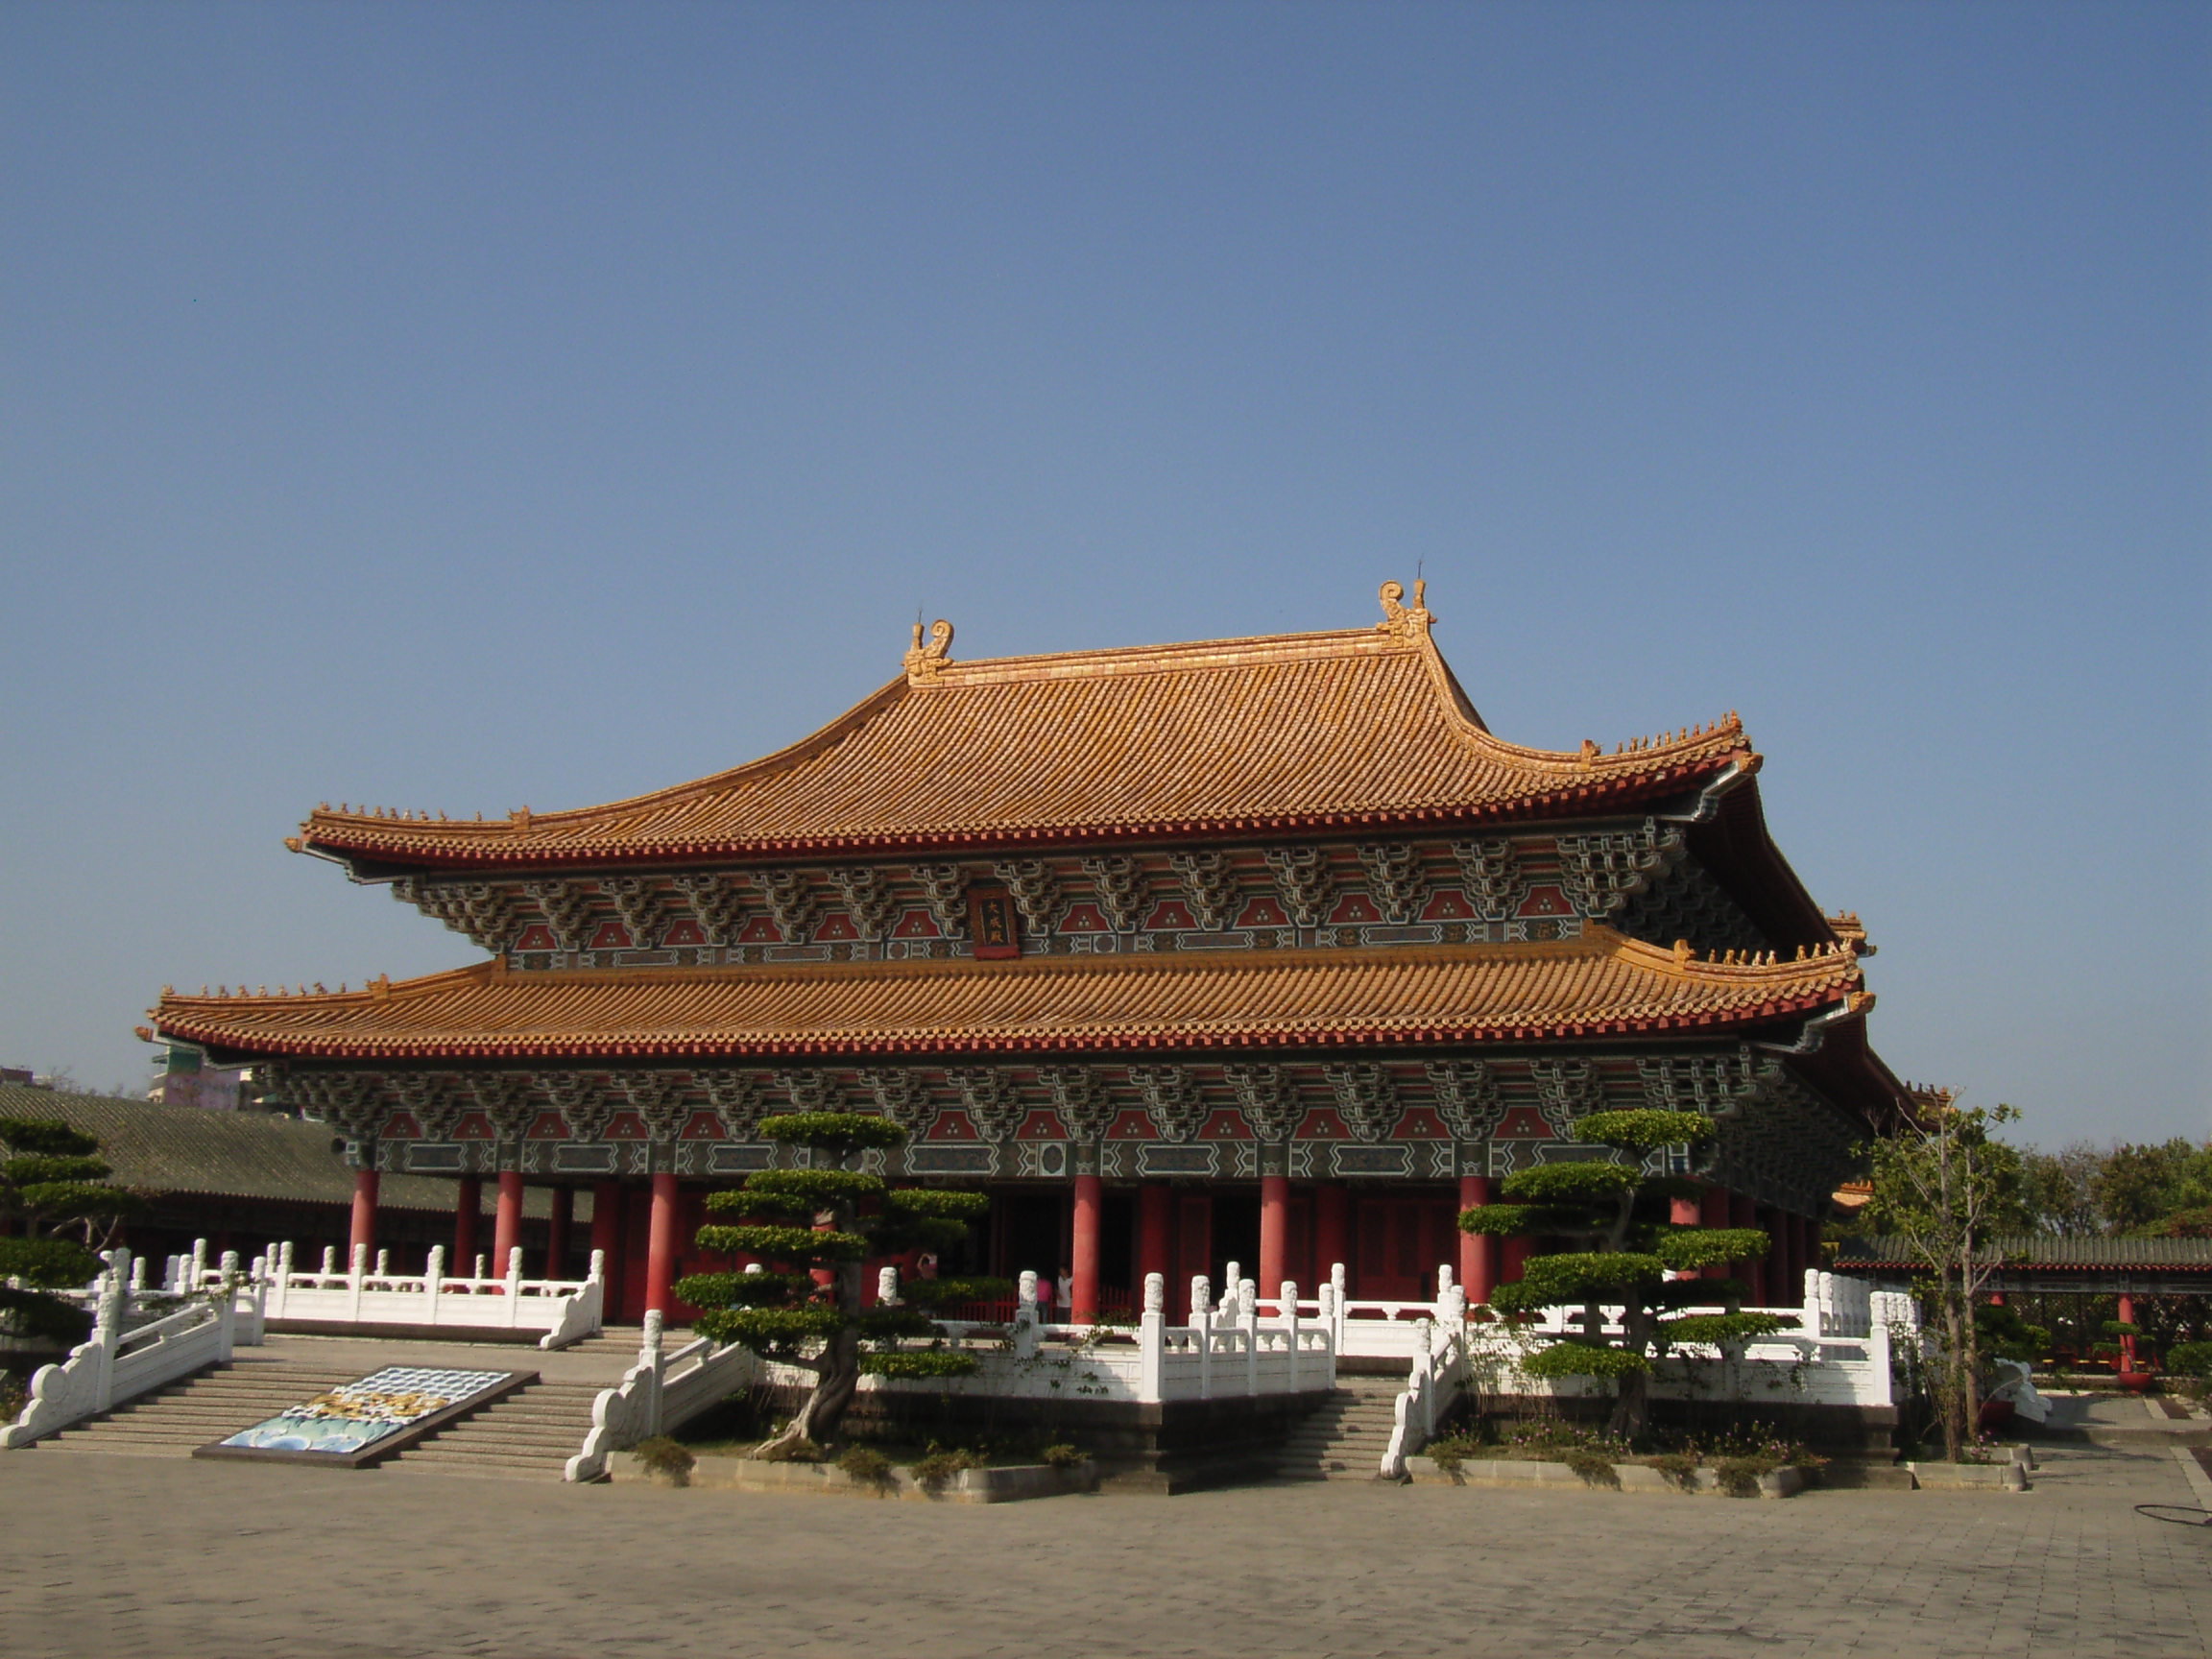 File:Zuoying Confucian Temple.jpg - Wikimedia Commons